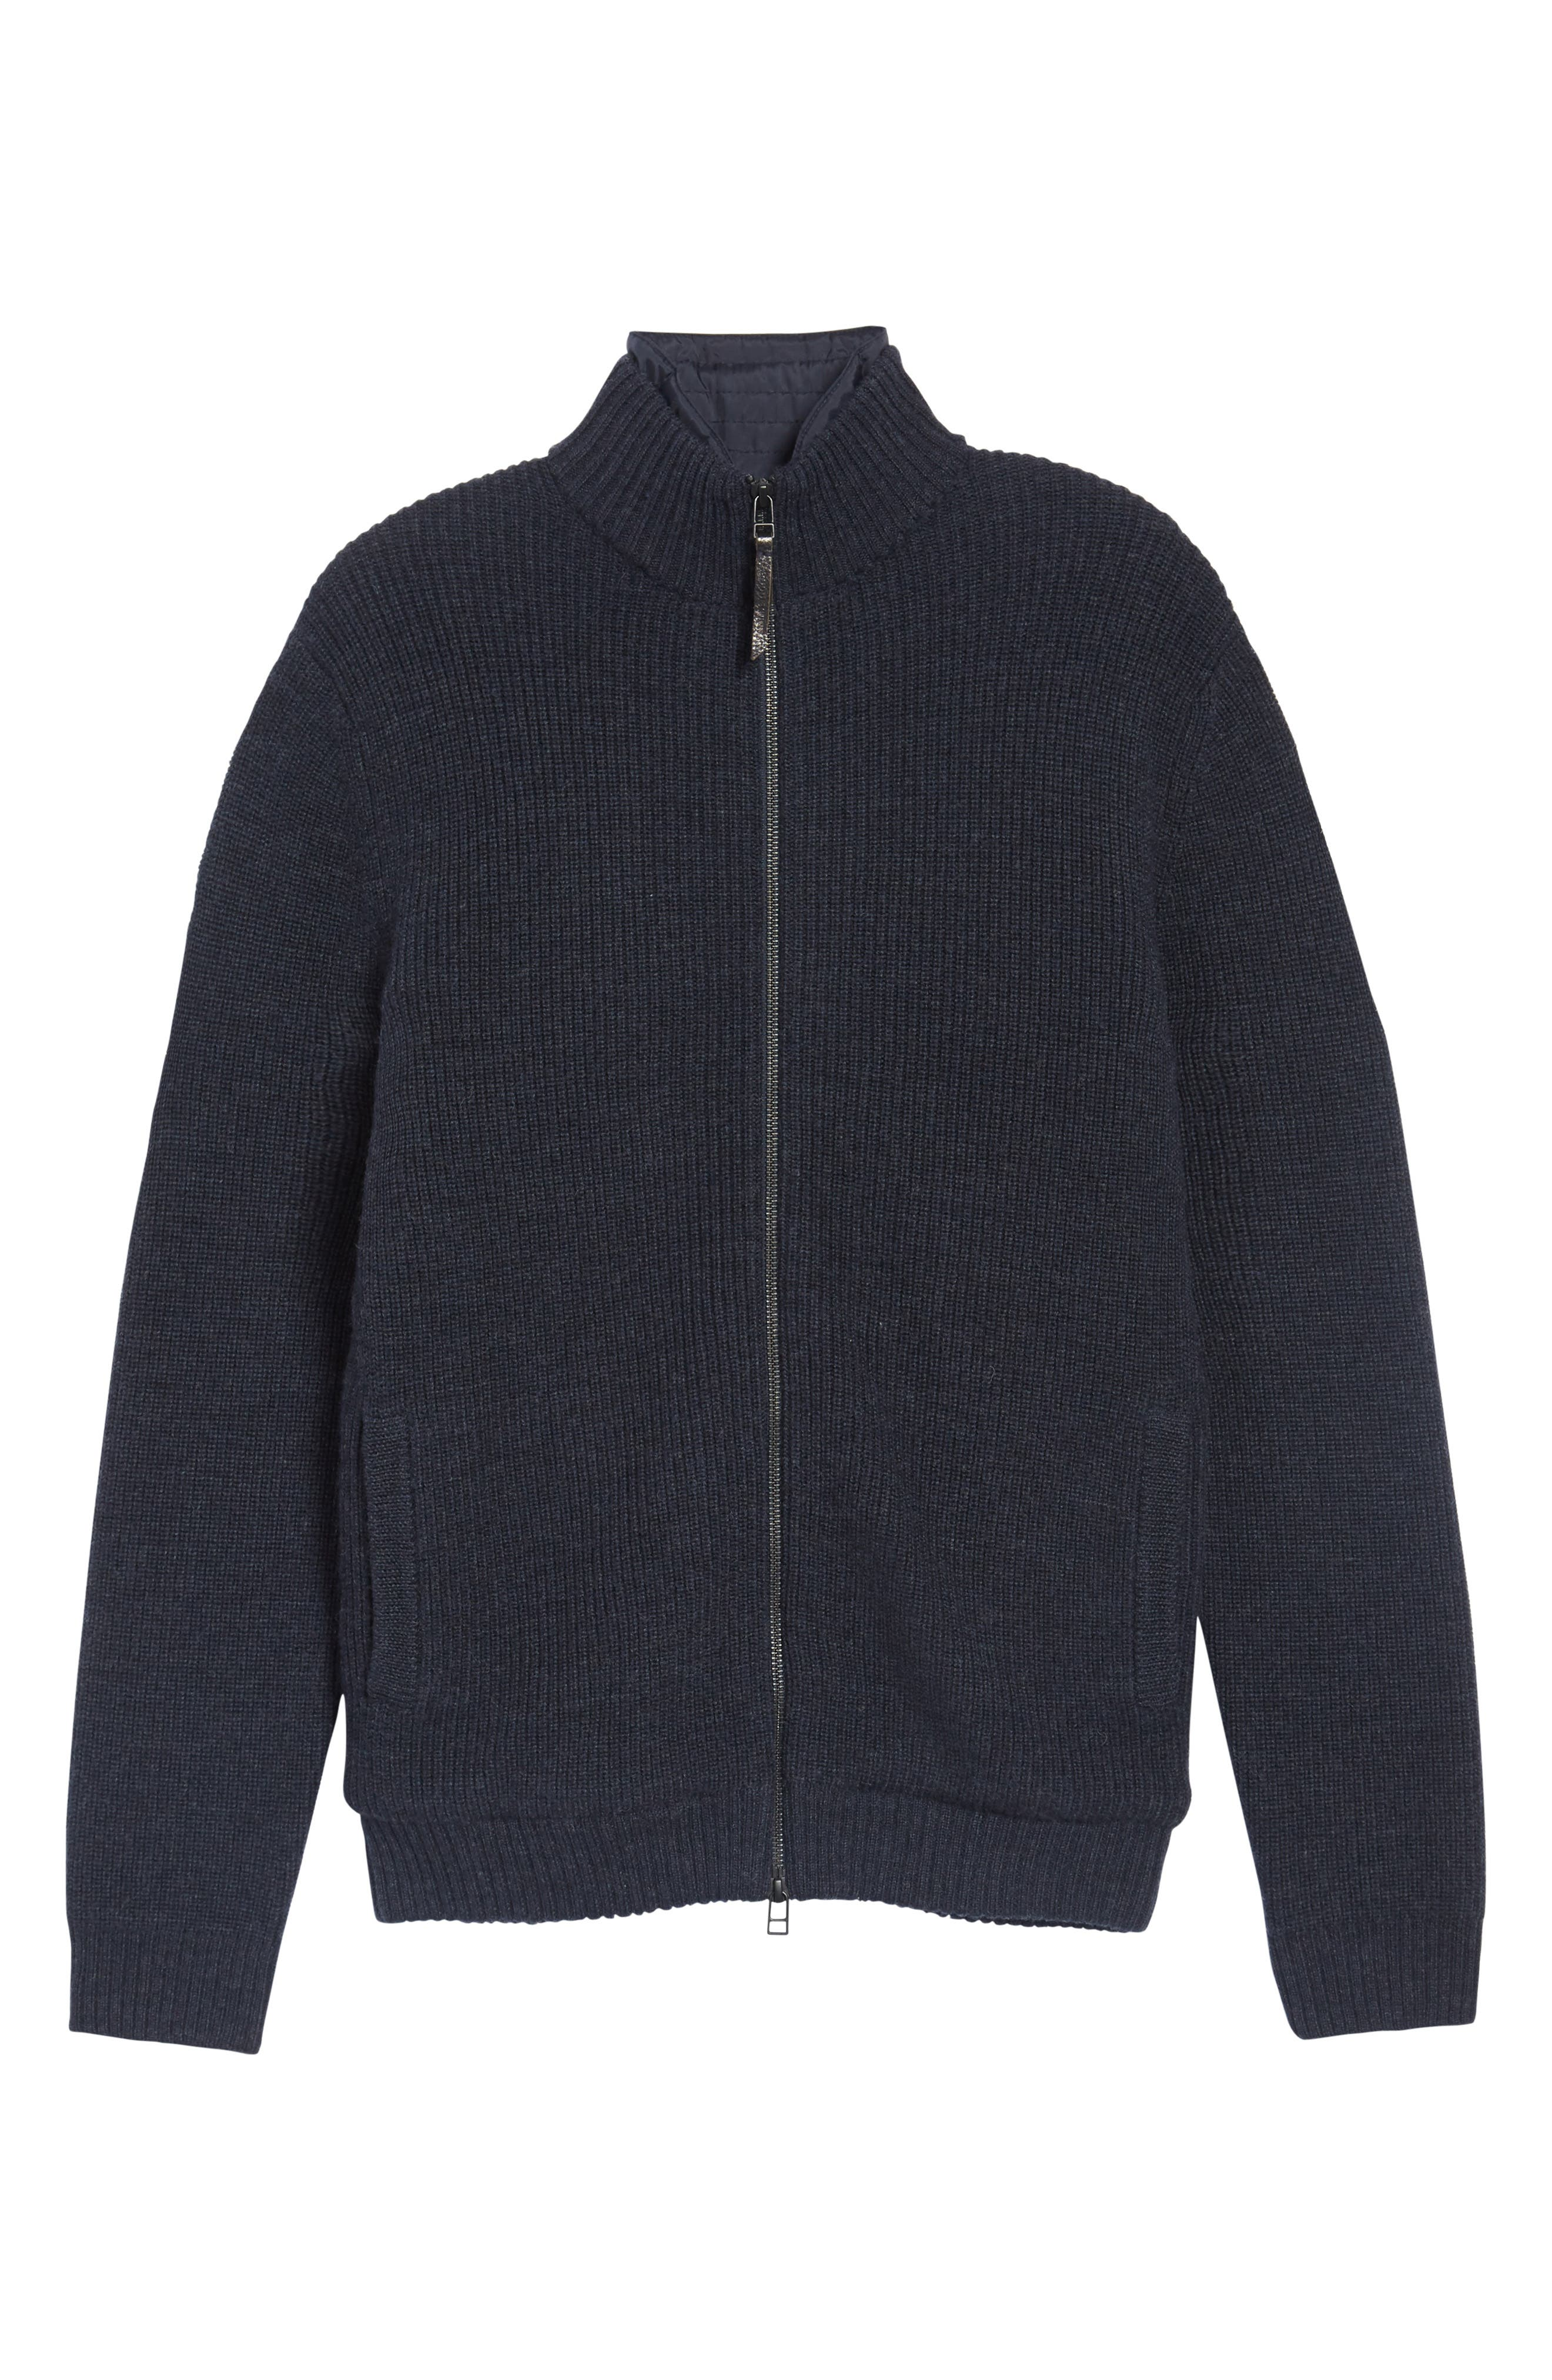 Camerons Track Zip Wool Sweater,                             Alternate thumbnail 6, color,                             MIDNIGHT